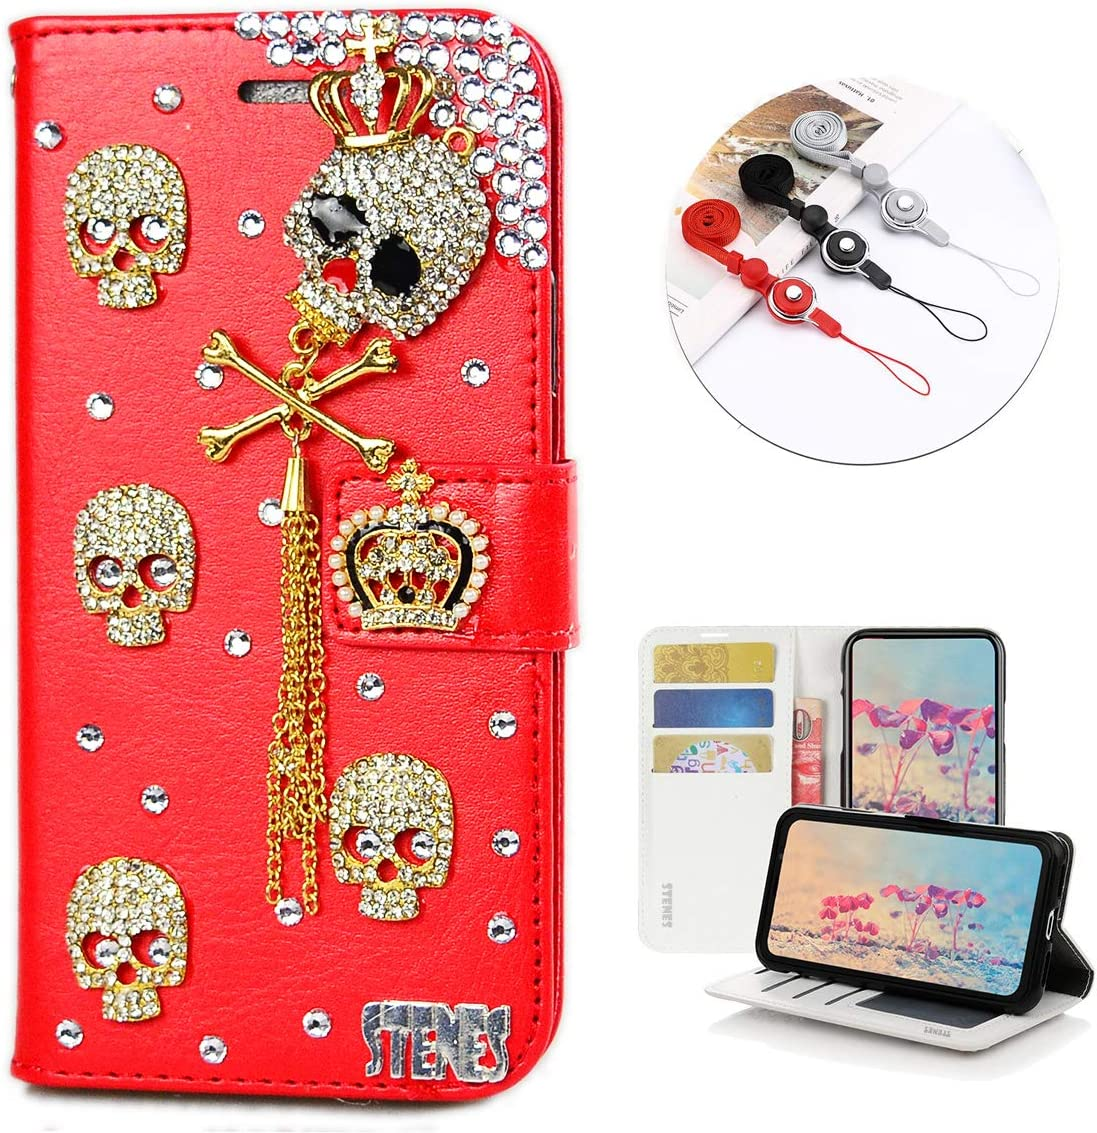 STENES Bling Wallet Phone Case Compatible with LG Tribute HD/LG X Style - Stylish - 3D Handmade Crown Skull Tassel Pendant Leather Cover with Neck Strap Lanyard [3 Pack] - Red